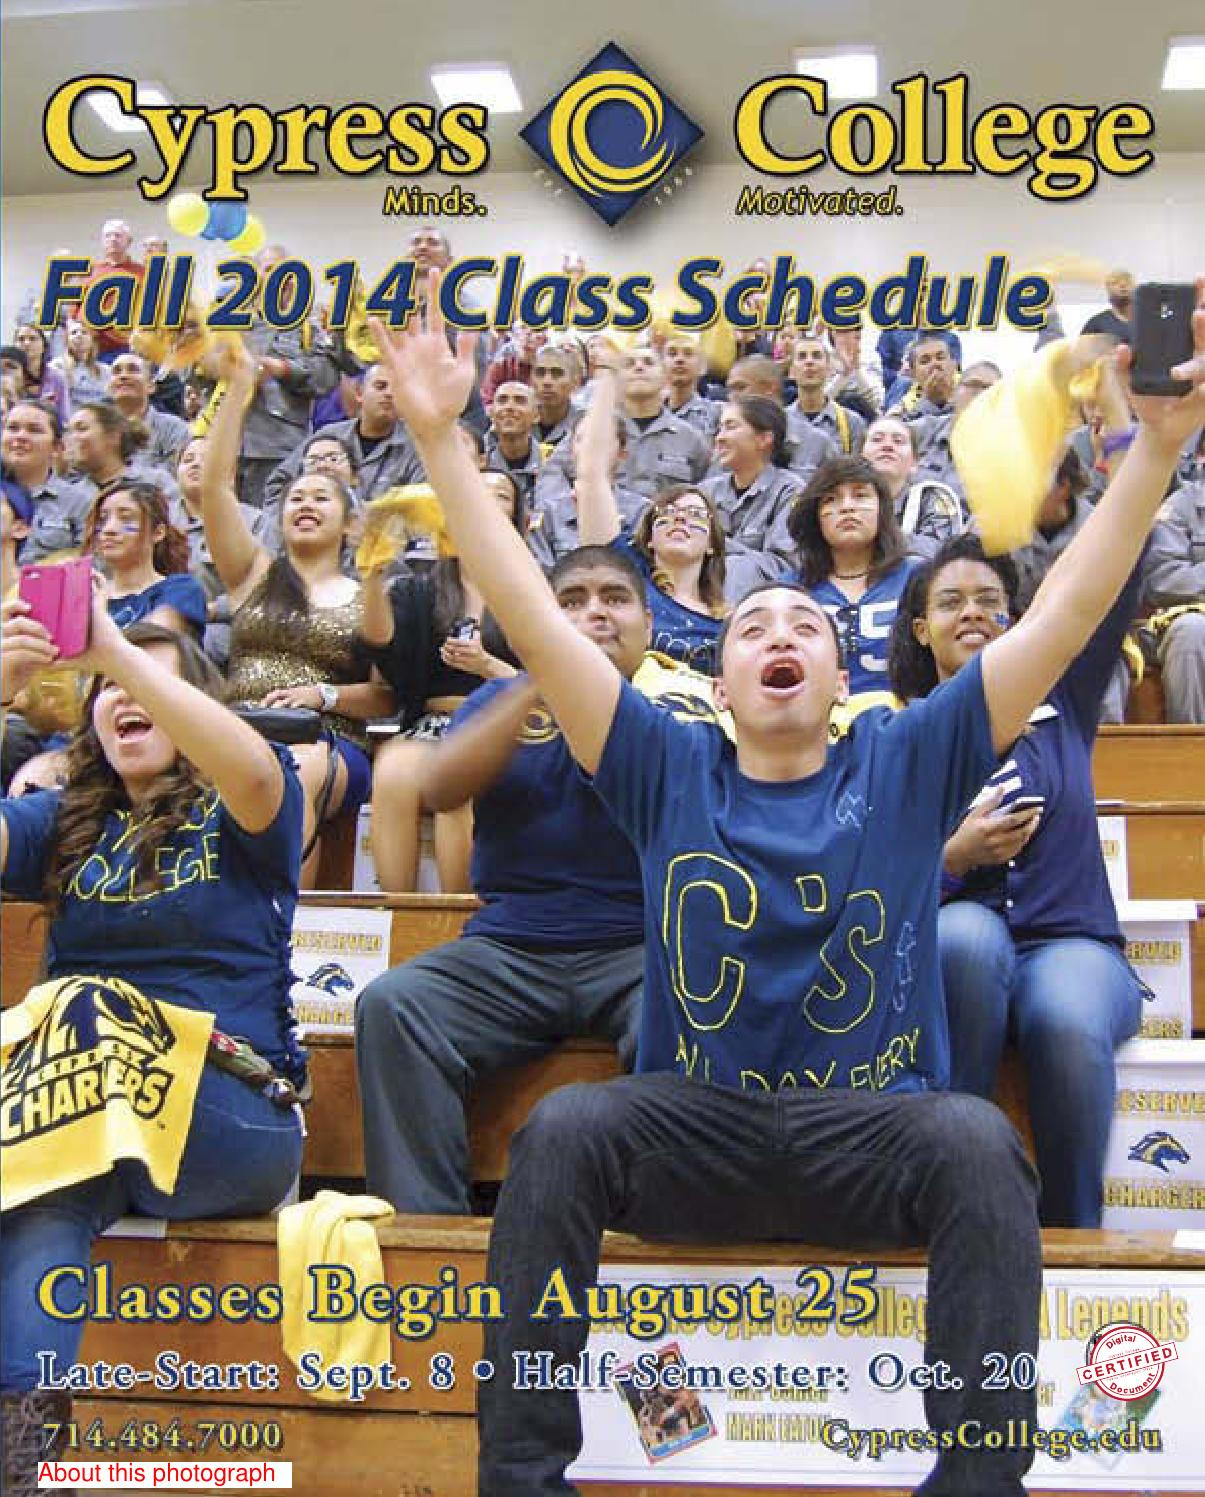 Cypress College Fall 2014 Class Schedule by Cypress College